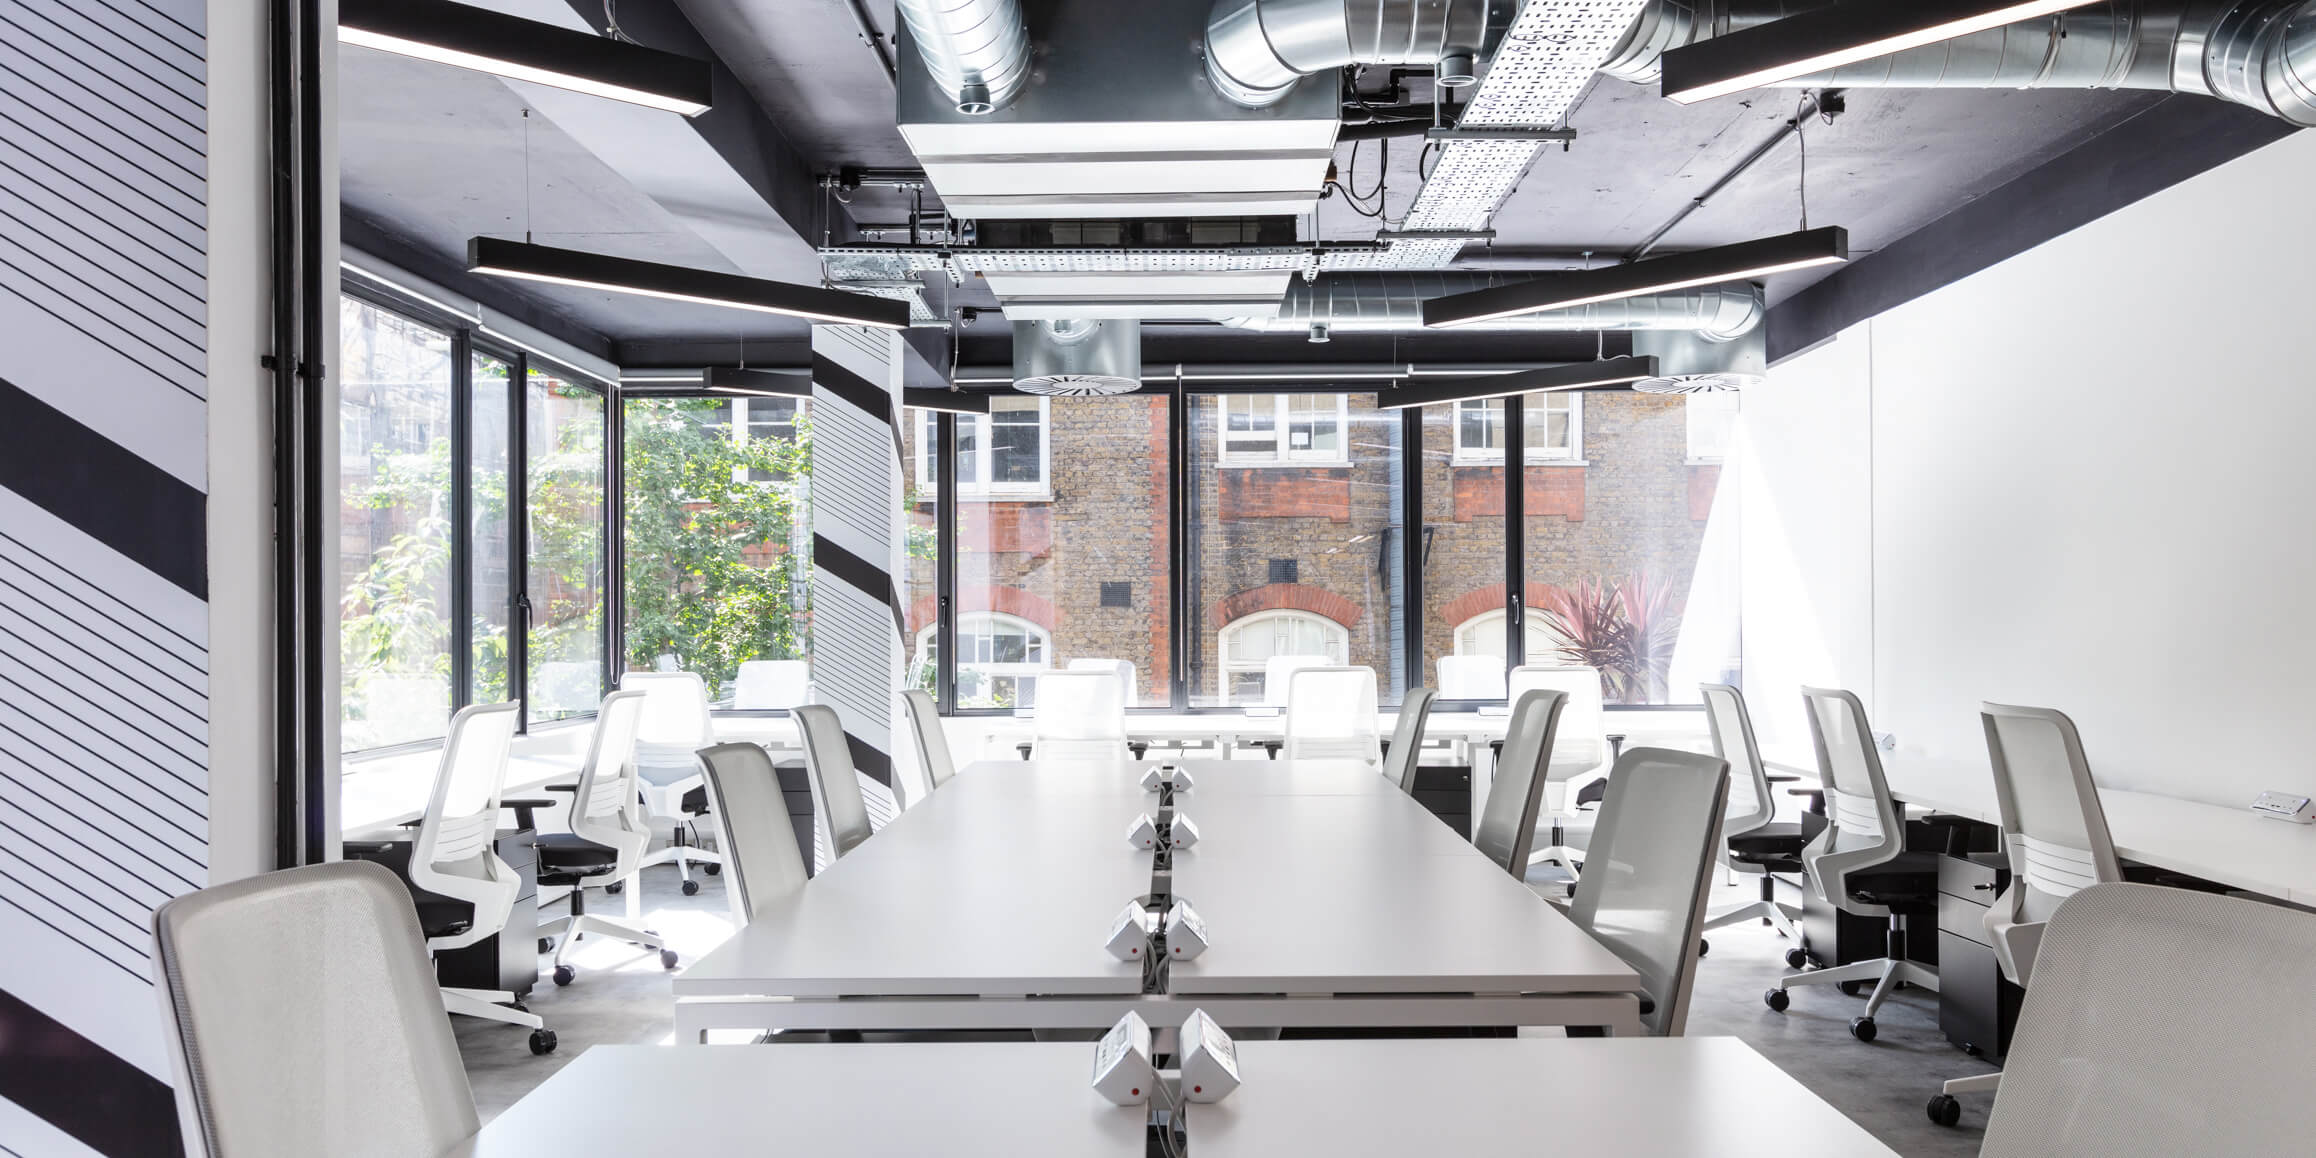 Meeting room audio visual solutions - Huckletree